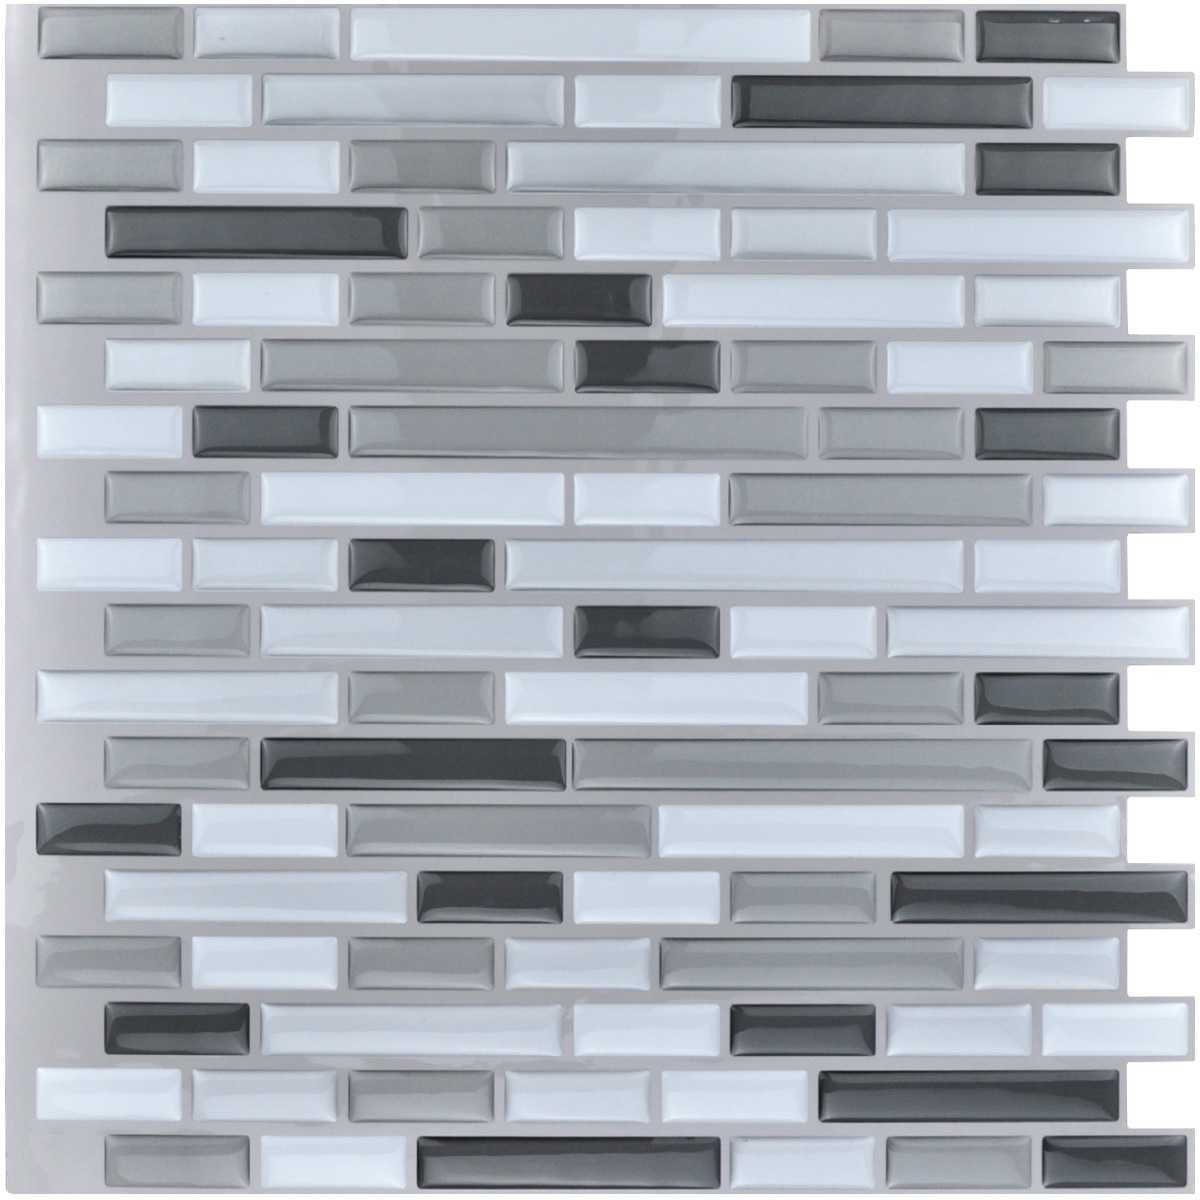 "Art3d 10-Pieces Peel and Stick Vinyl Sticker Kitchen Backsplash Tiles, 12"" x 12"" Gray White Design"